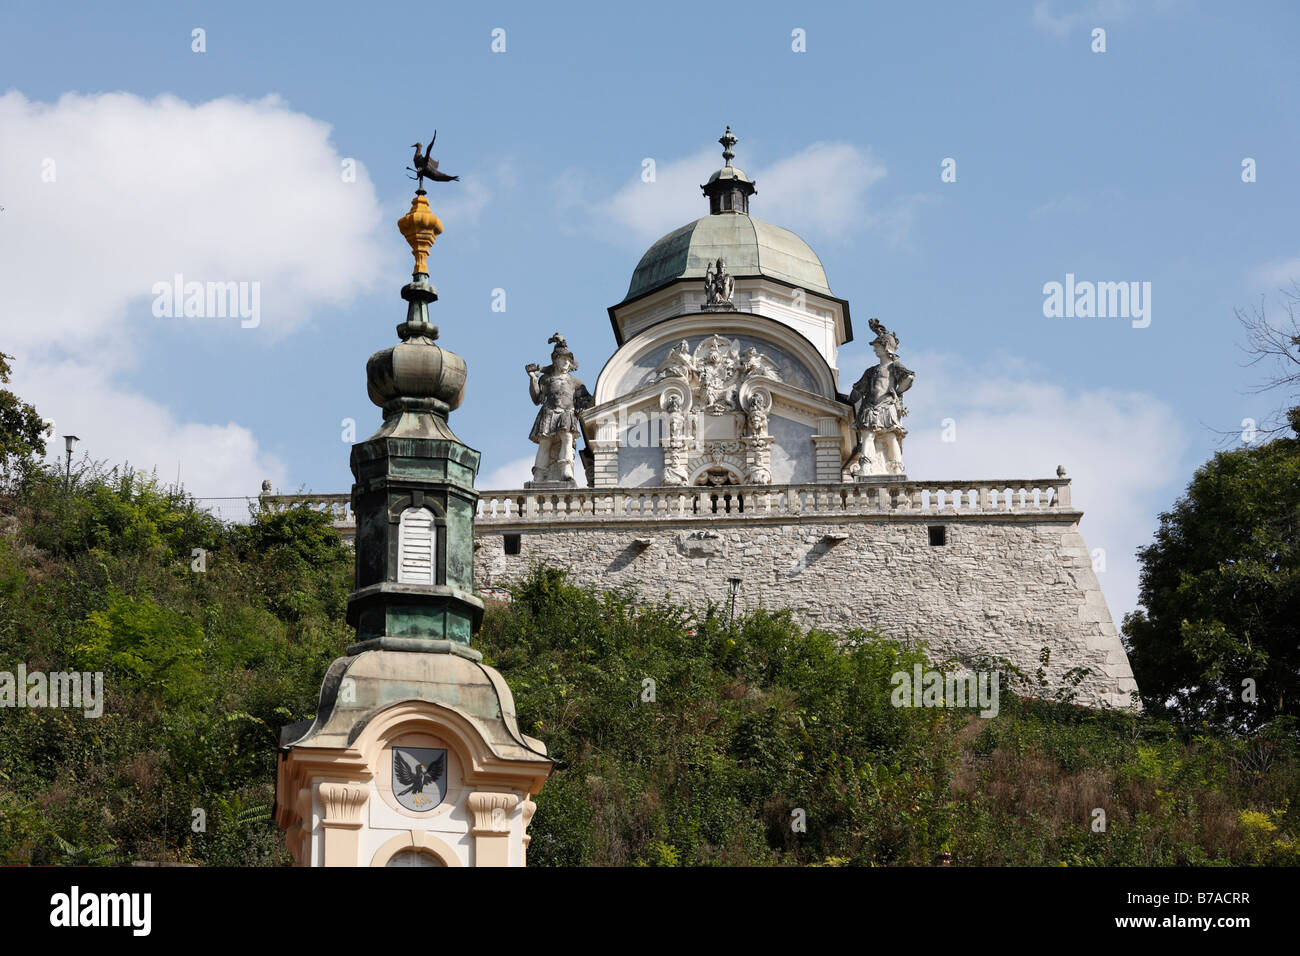 The Eggenberger family mausoleum and the spire of the parish church, Ehrenhausen, Styria, Austria, Europe - Stock Image